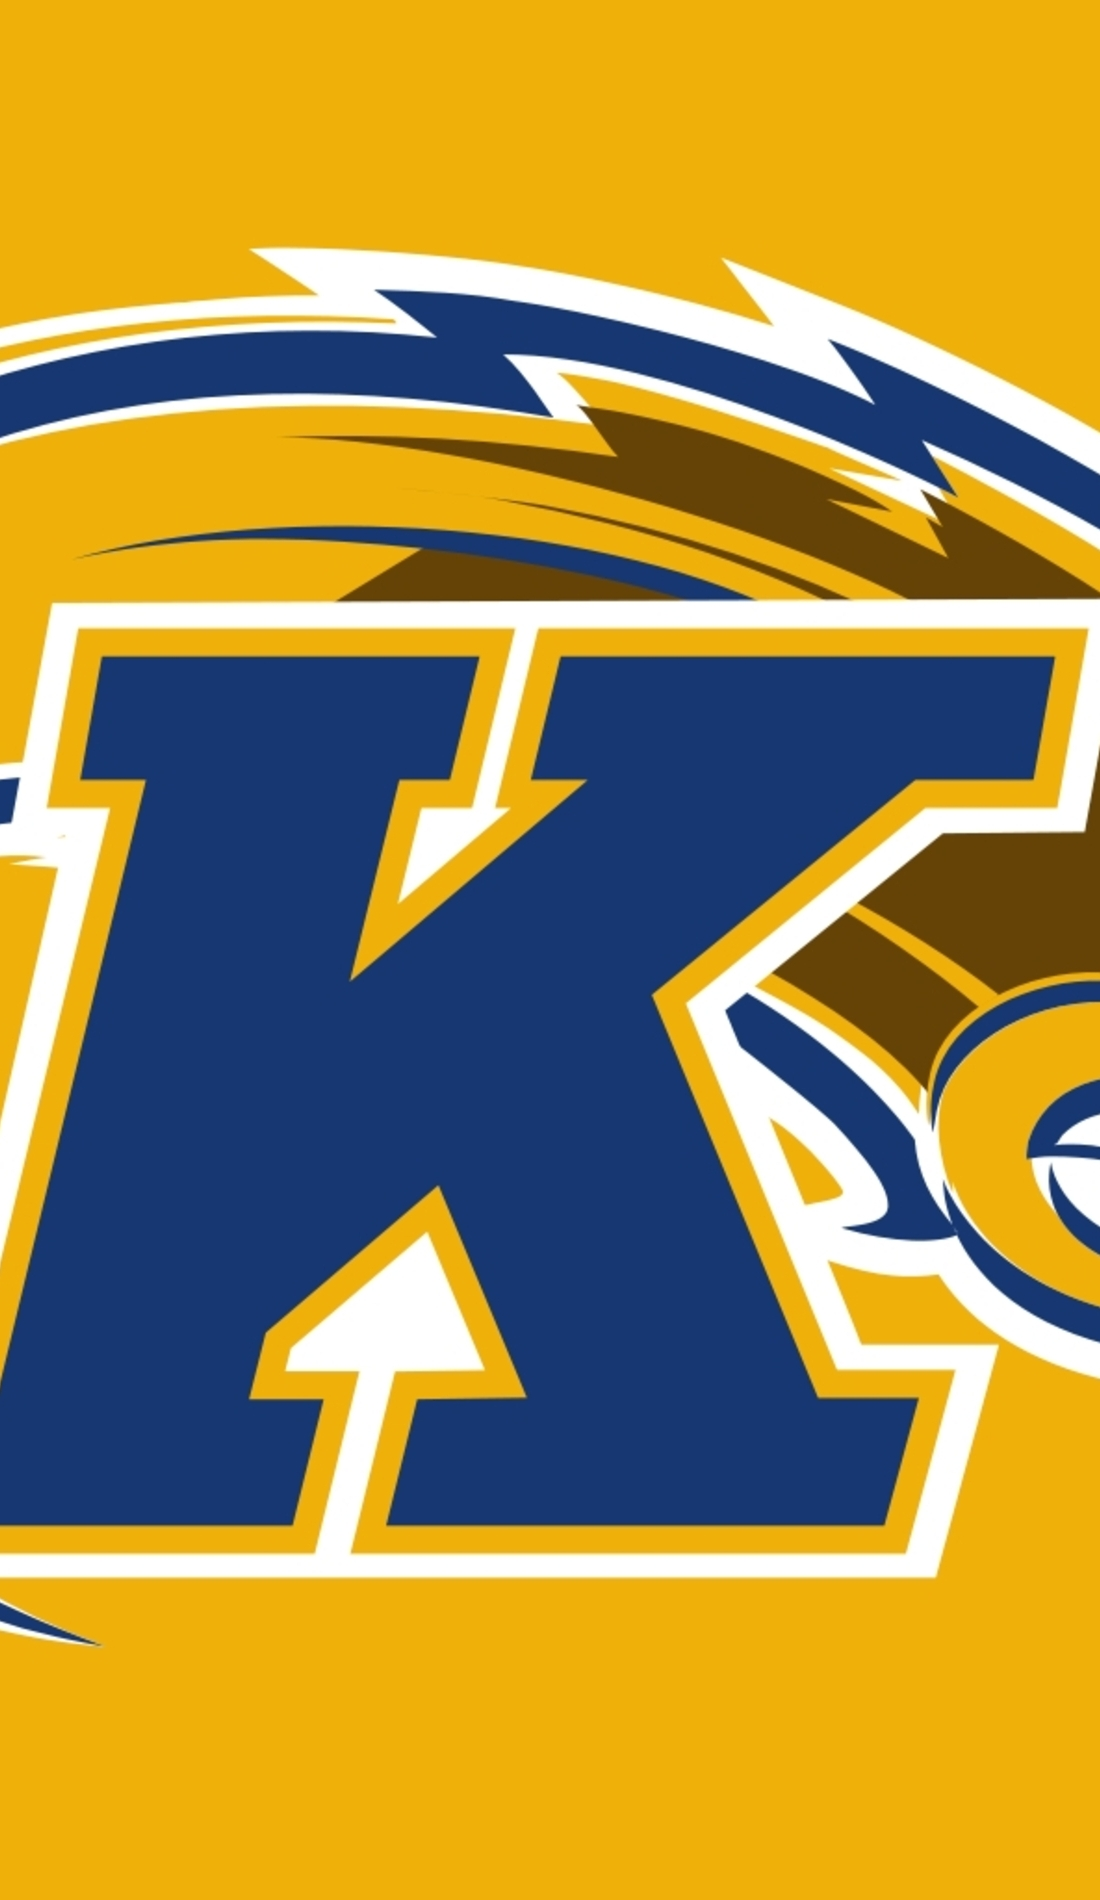 A Kent State Golden Flashes Baseball live event